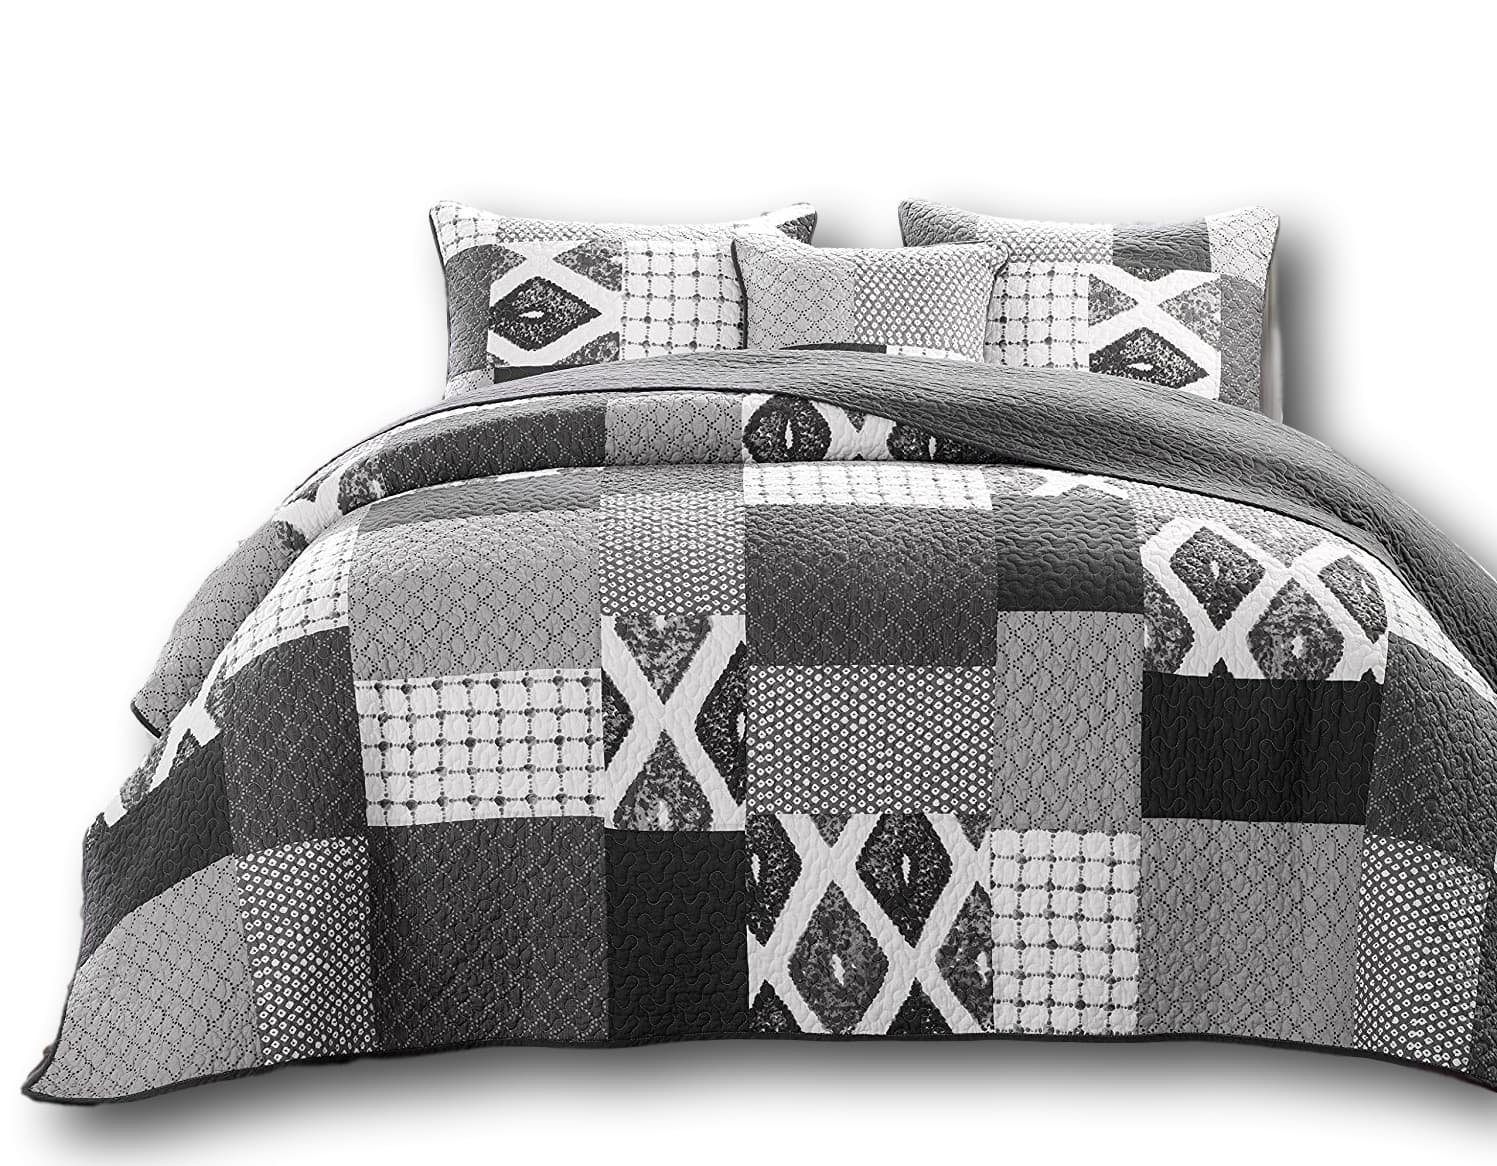 DaDa Bedding Classical Shades of Grey Reversible Cotton Real Patchwork Quilted Coverlet Bedspread Set - Bright Vibrant Geometric Chevron Cool Dark Charcoal & White Print - Full - 3-Pieces by DaDa Bedding Collection